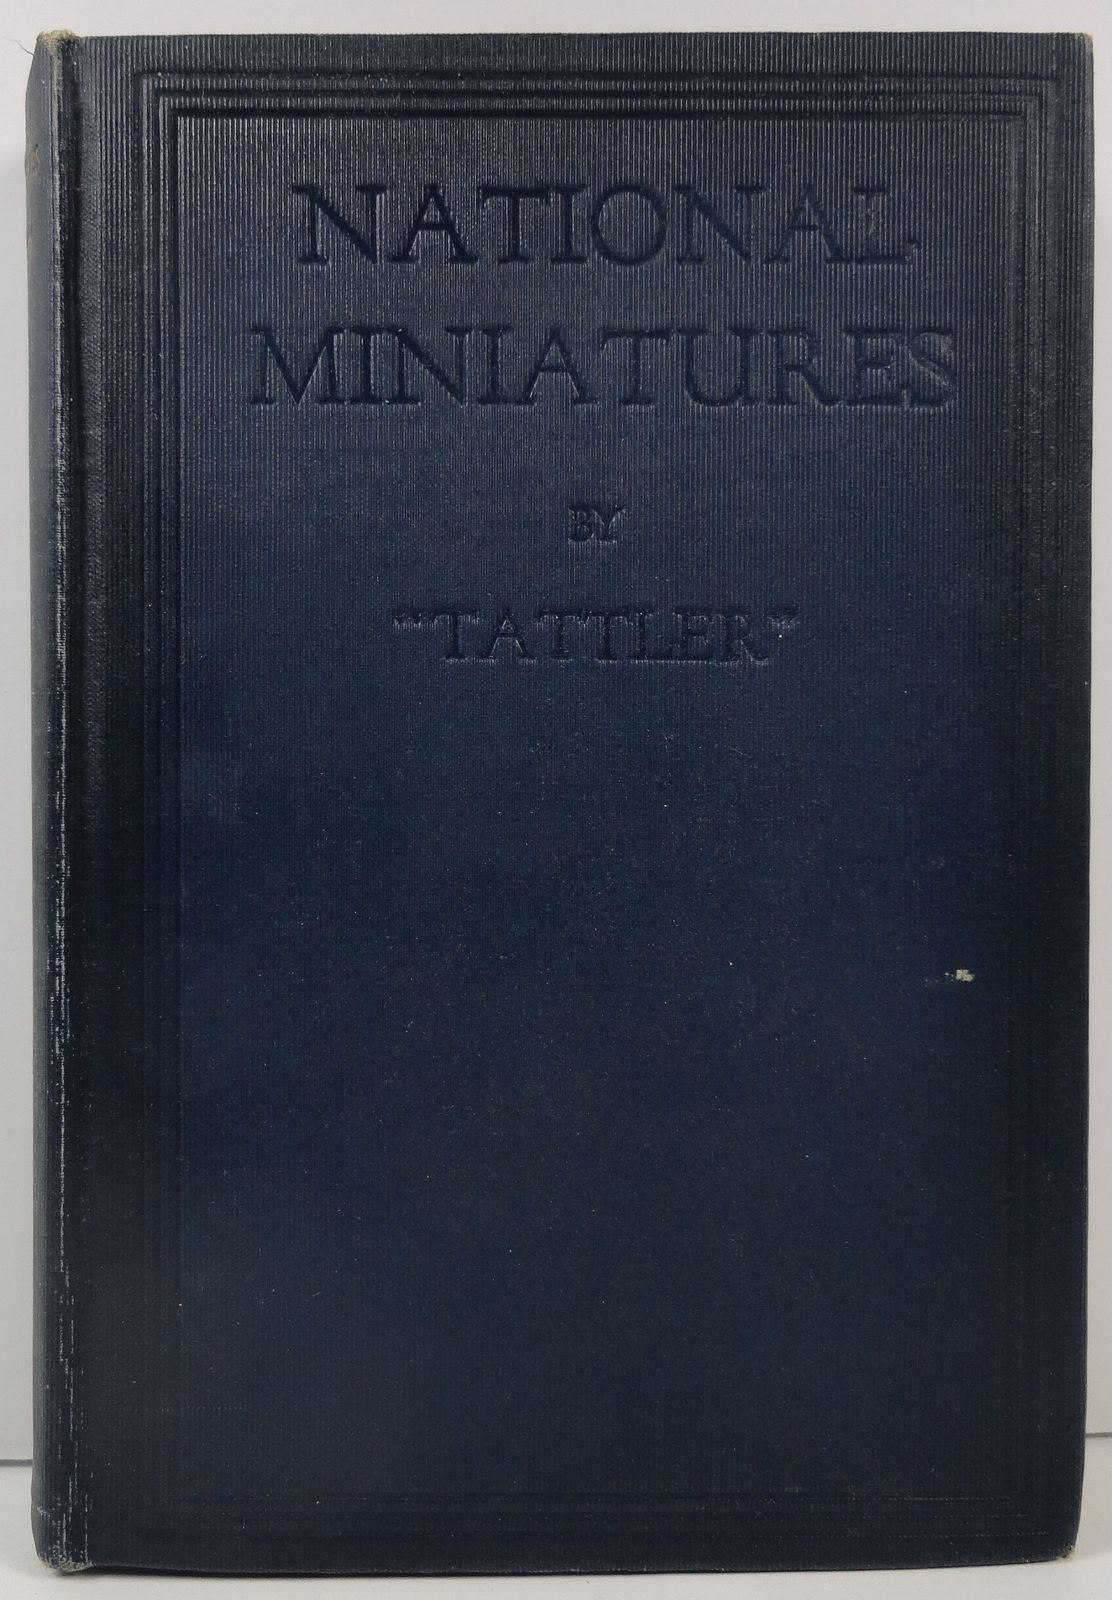 National Miniatures by Tattler 1918 Alfred A. Knopf